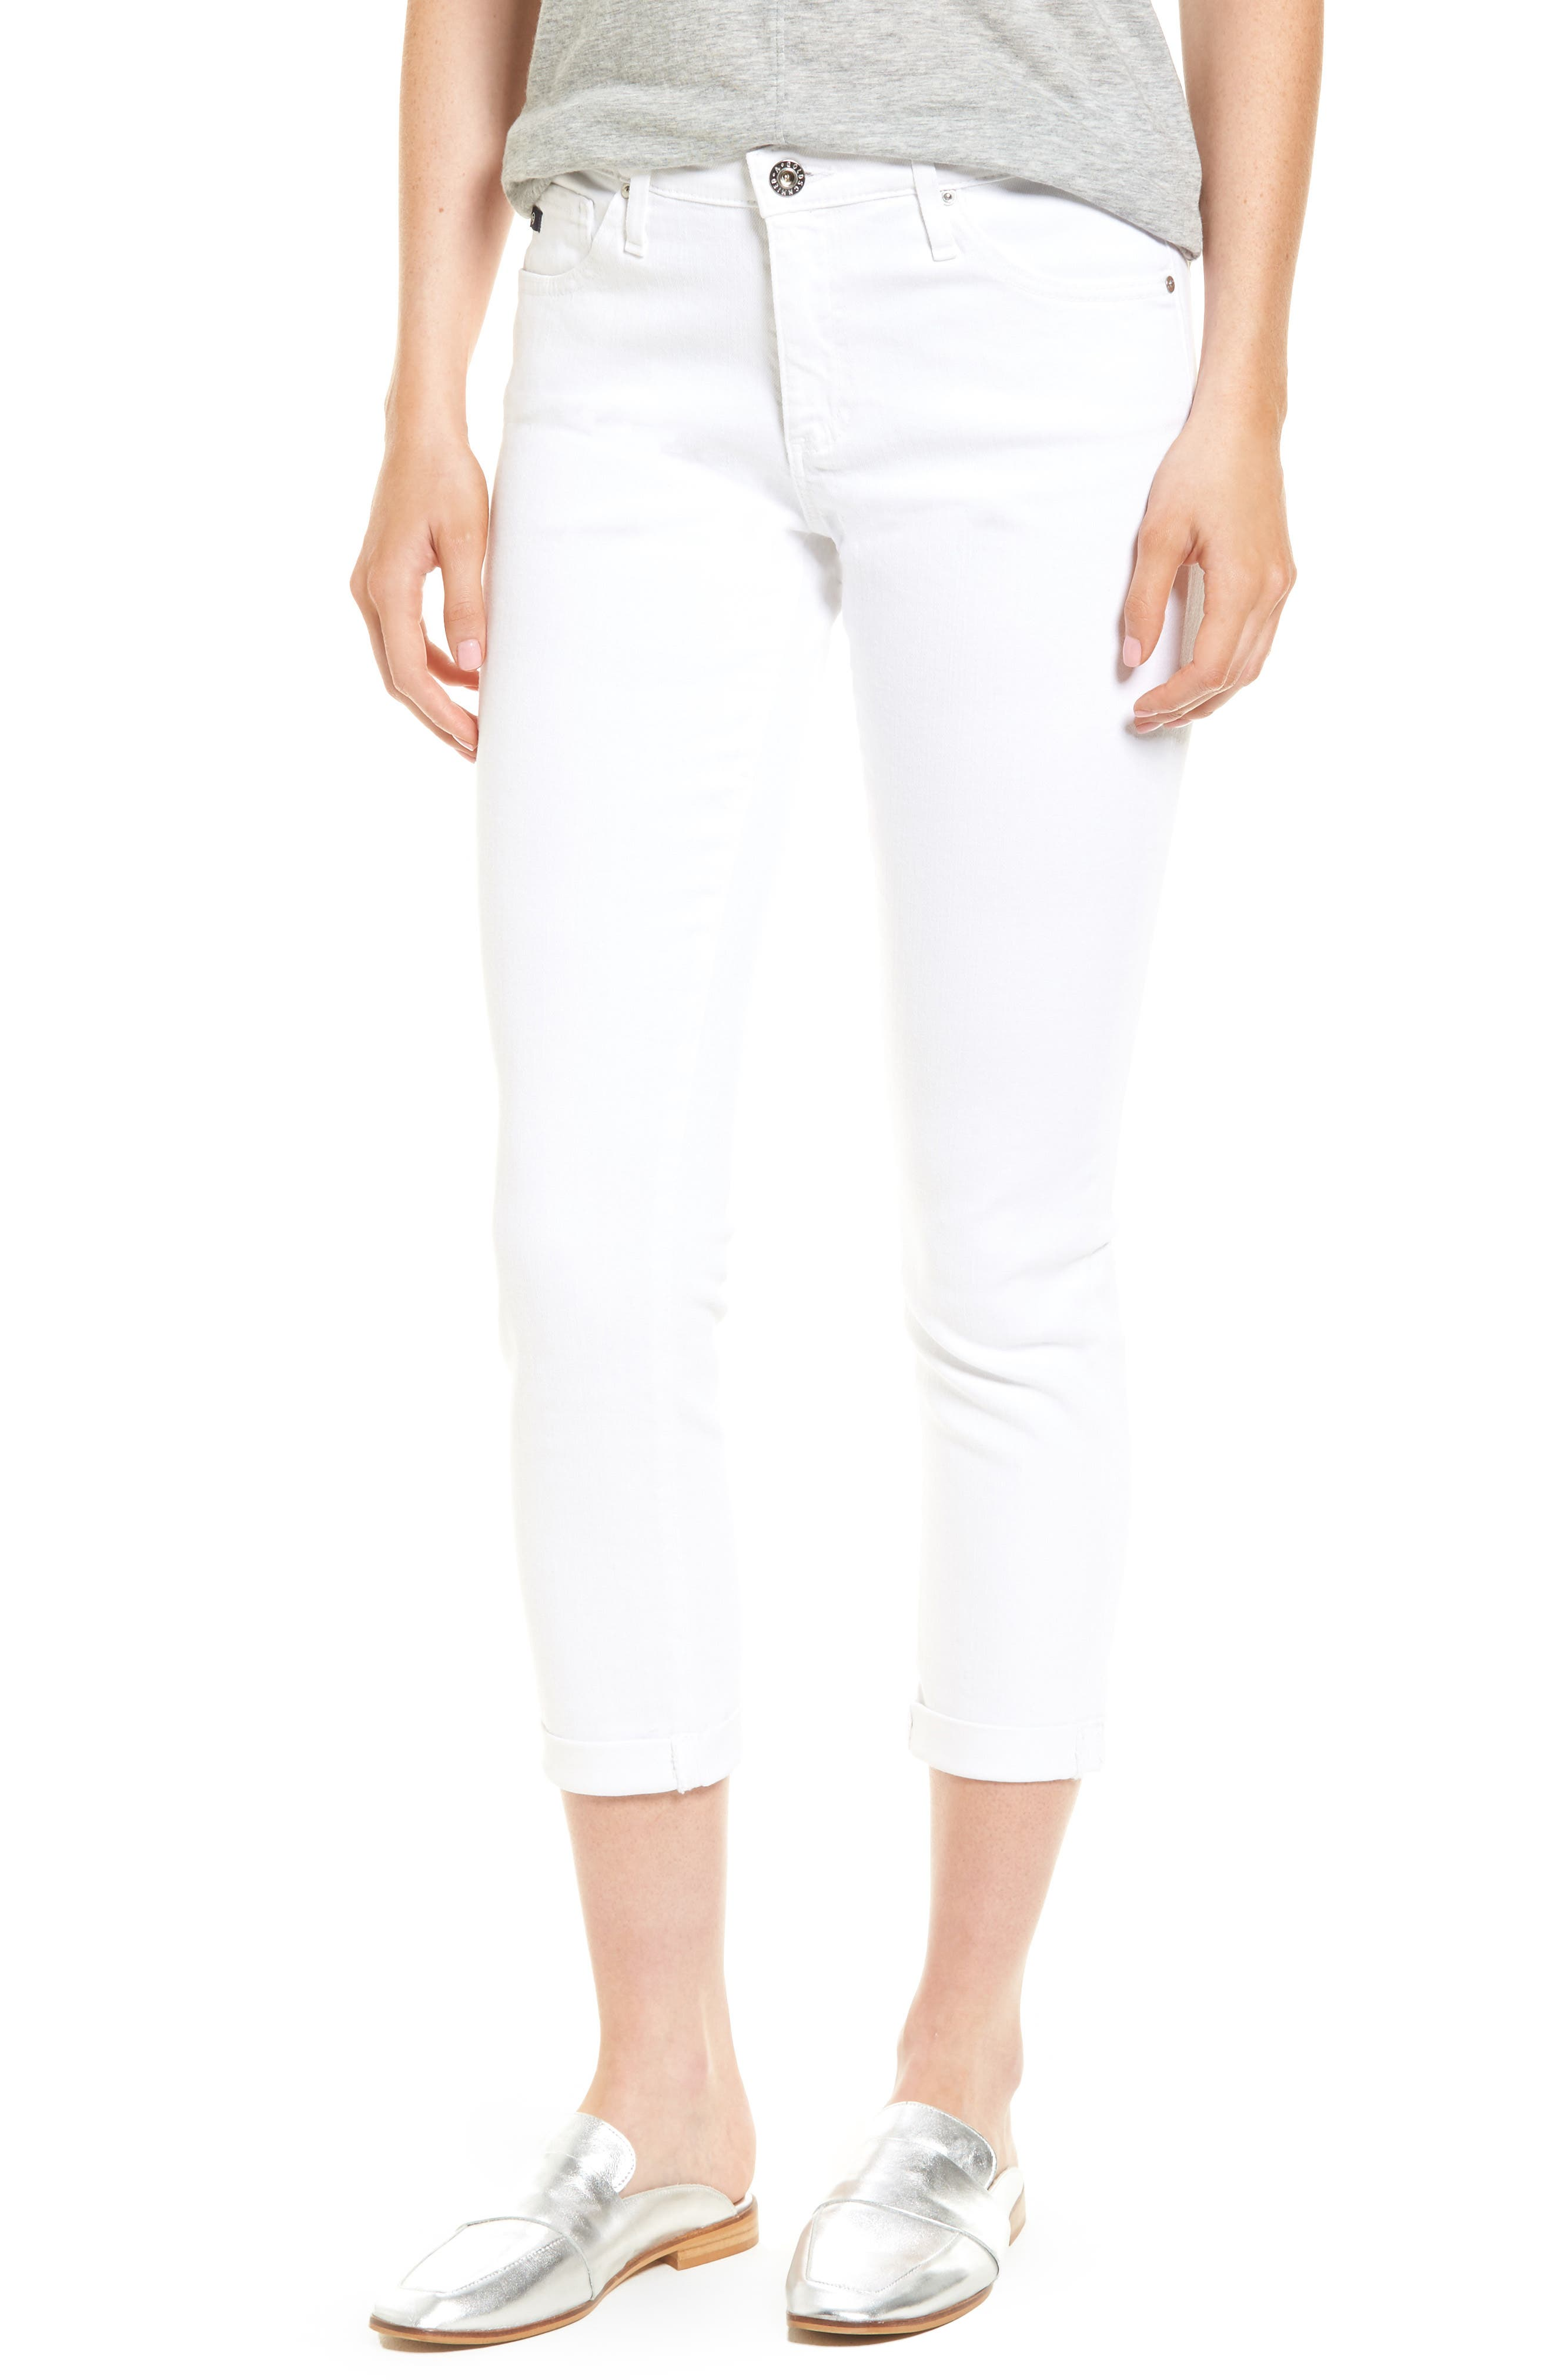 Skinny white cropped jeans